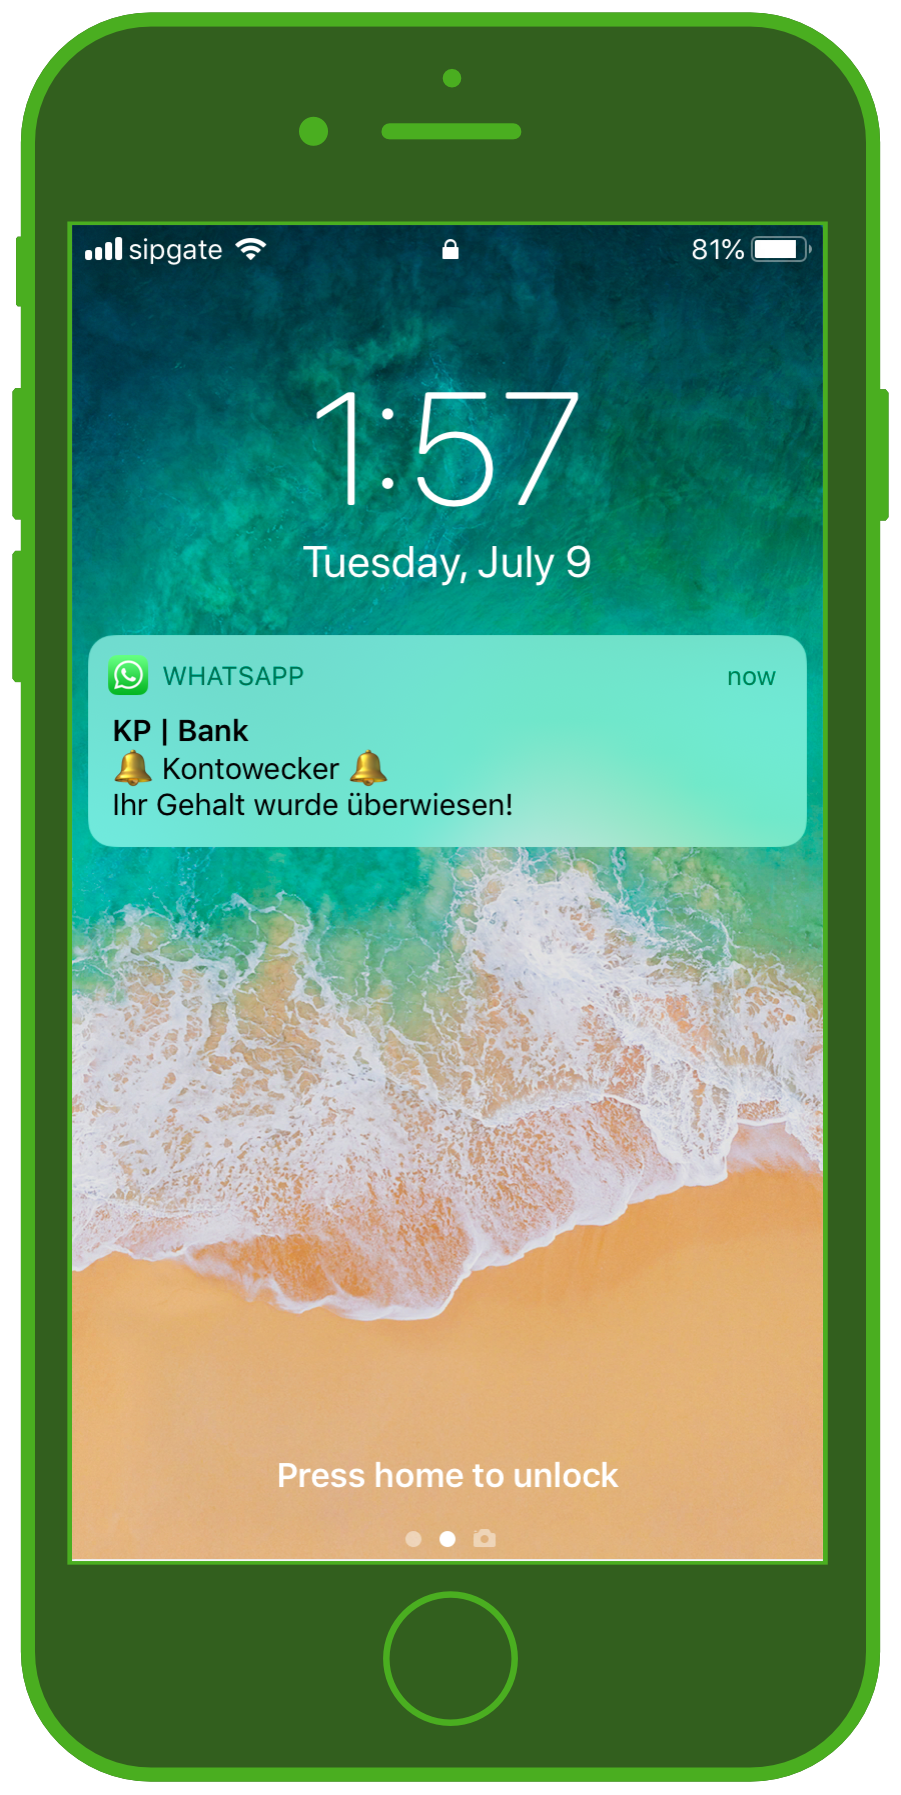 How banks can improve customer service with messaging apps